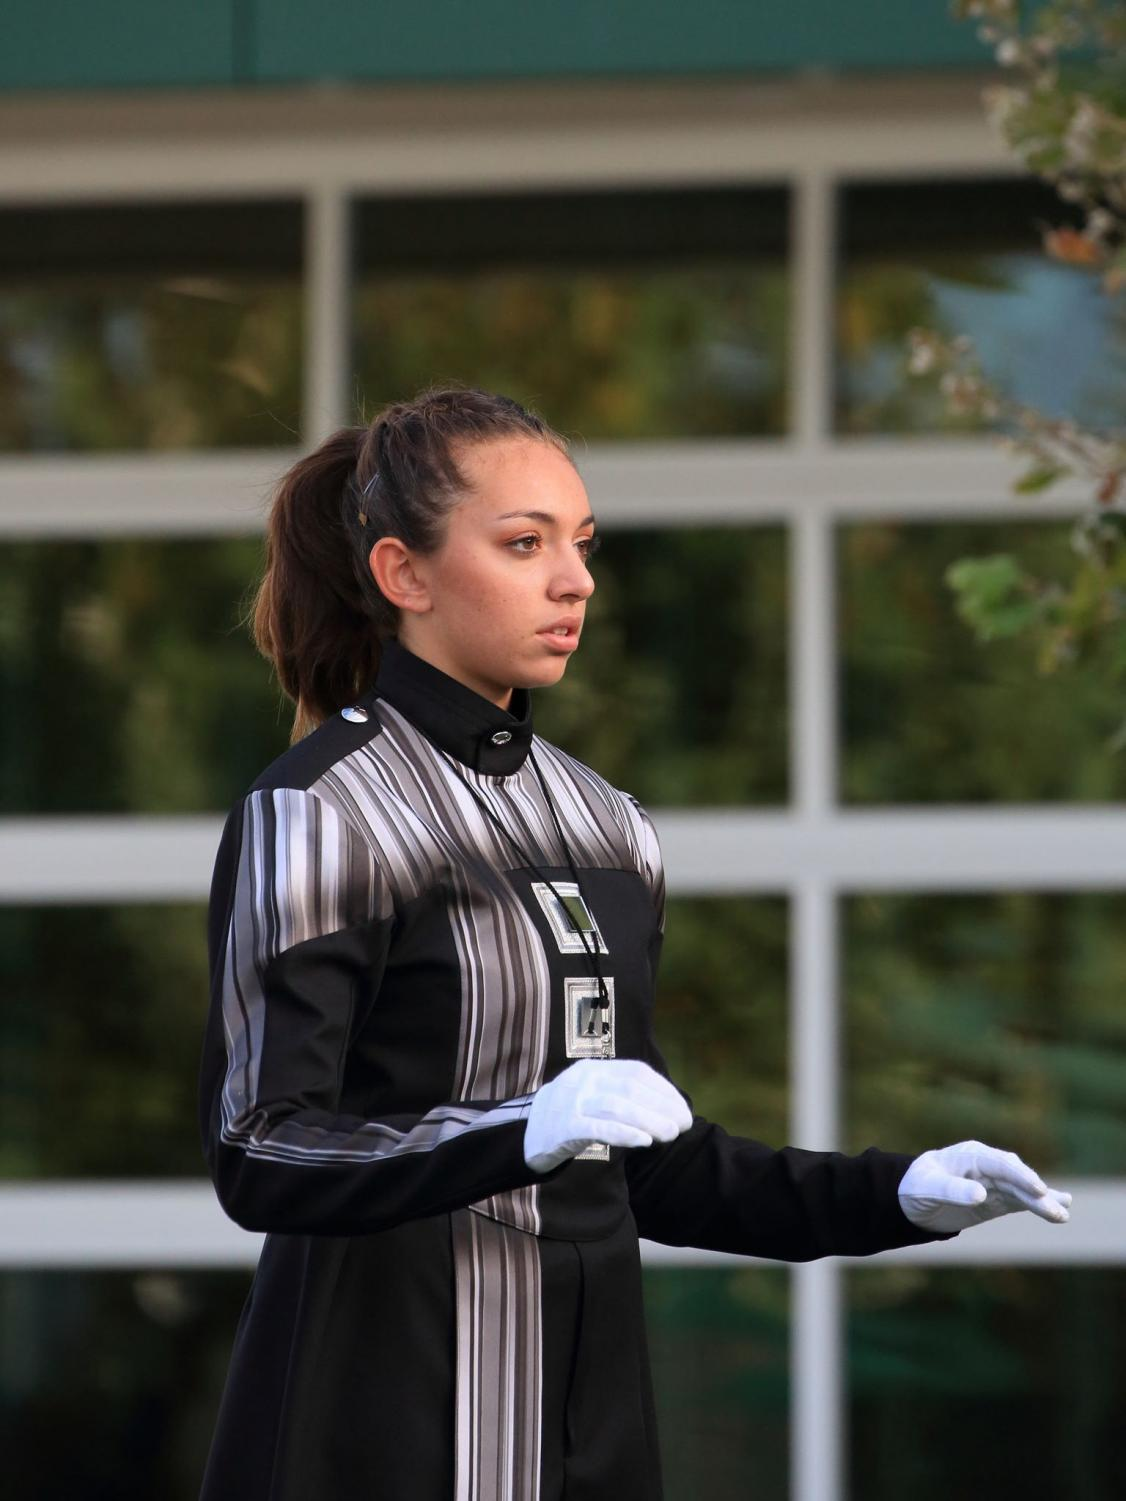 Senior Shani Zuniga is lead drum major for the marching band. This is her ninth year participating in a band program. Photo courtesy of Jim Zumsteg.